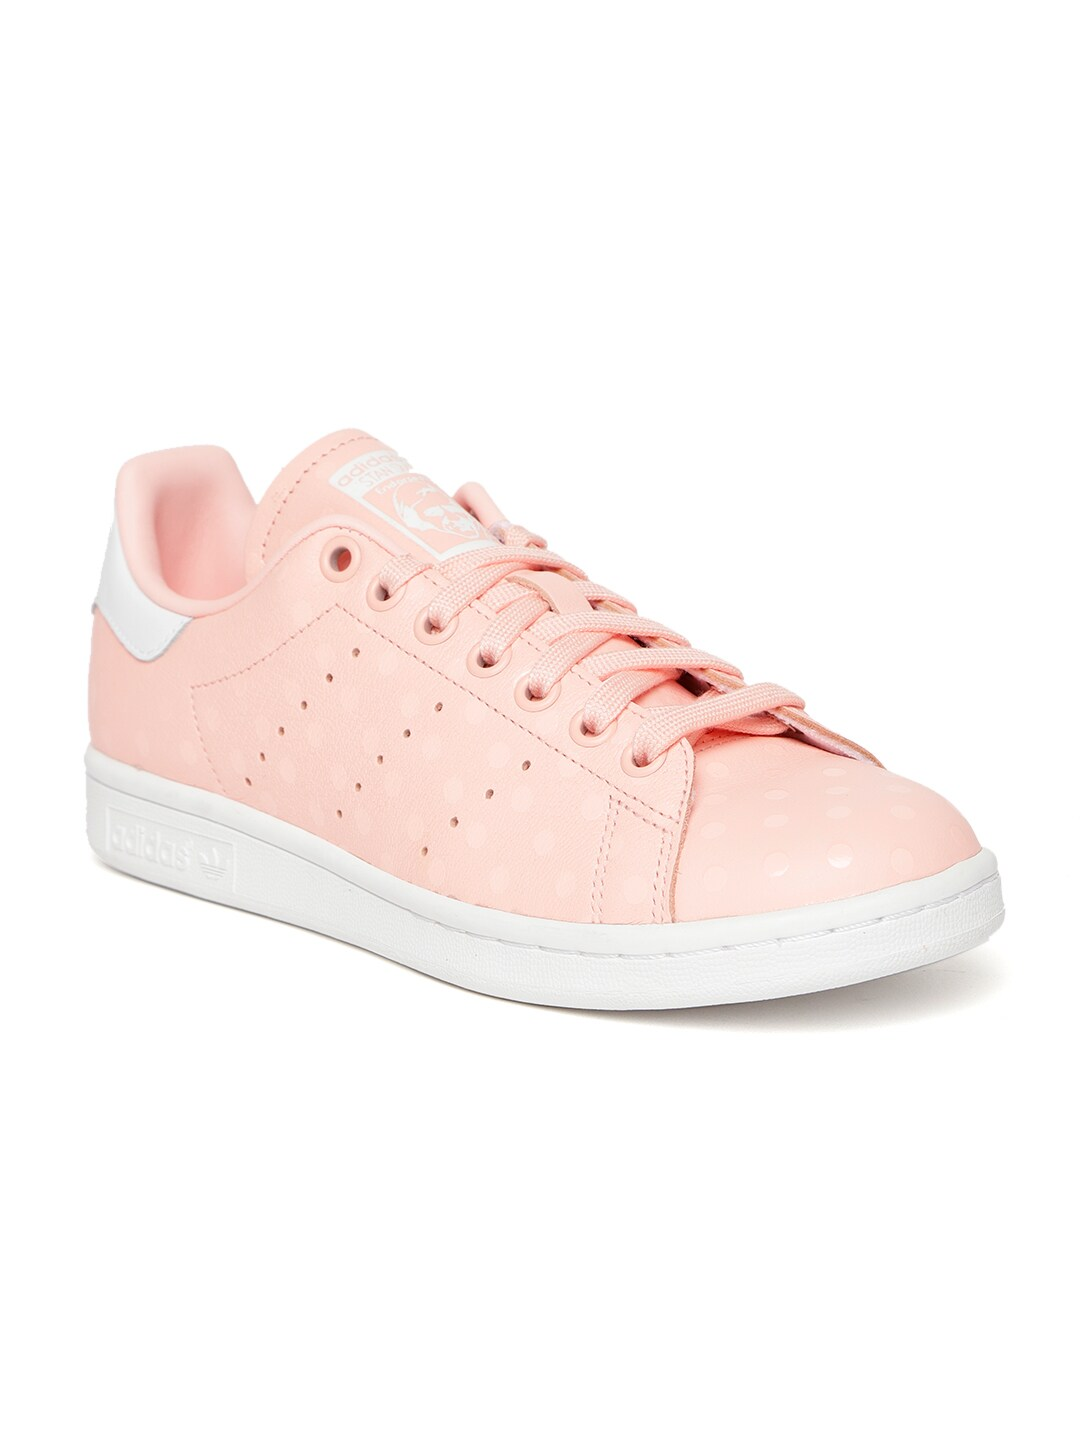 7efb3e1930f4 Adidas Stan Smith Sneakers - Buy Stan Smith Shoes and Sneakers Online in  India - Myntra